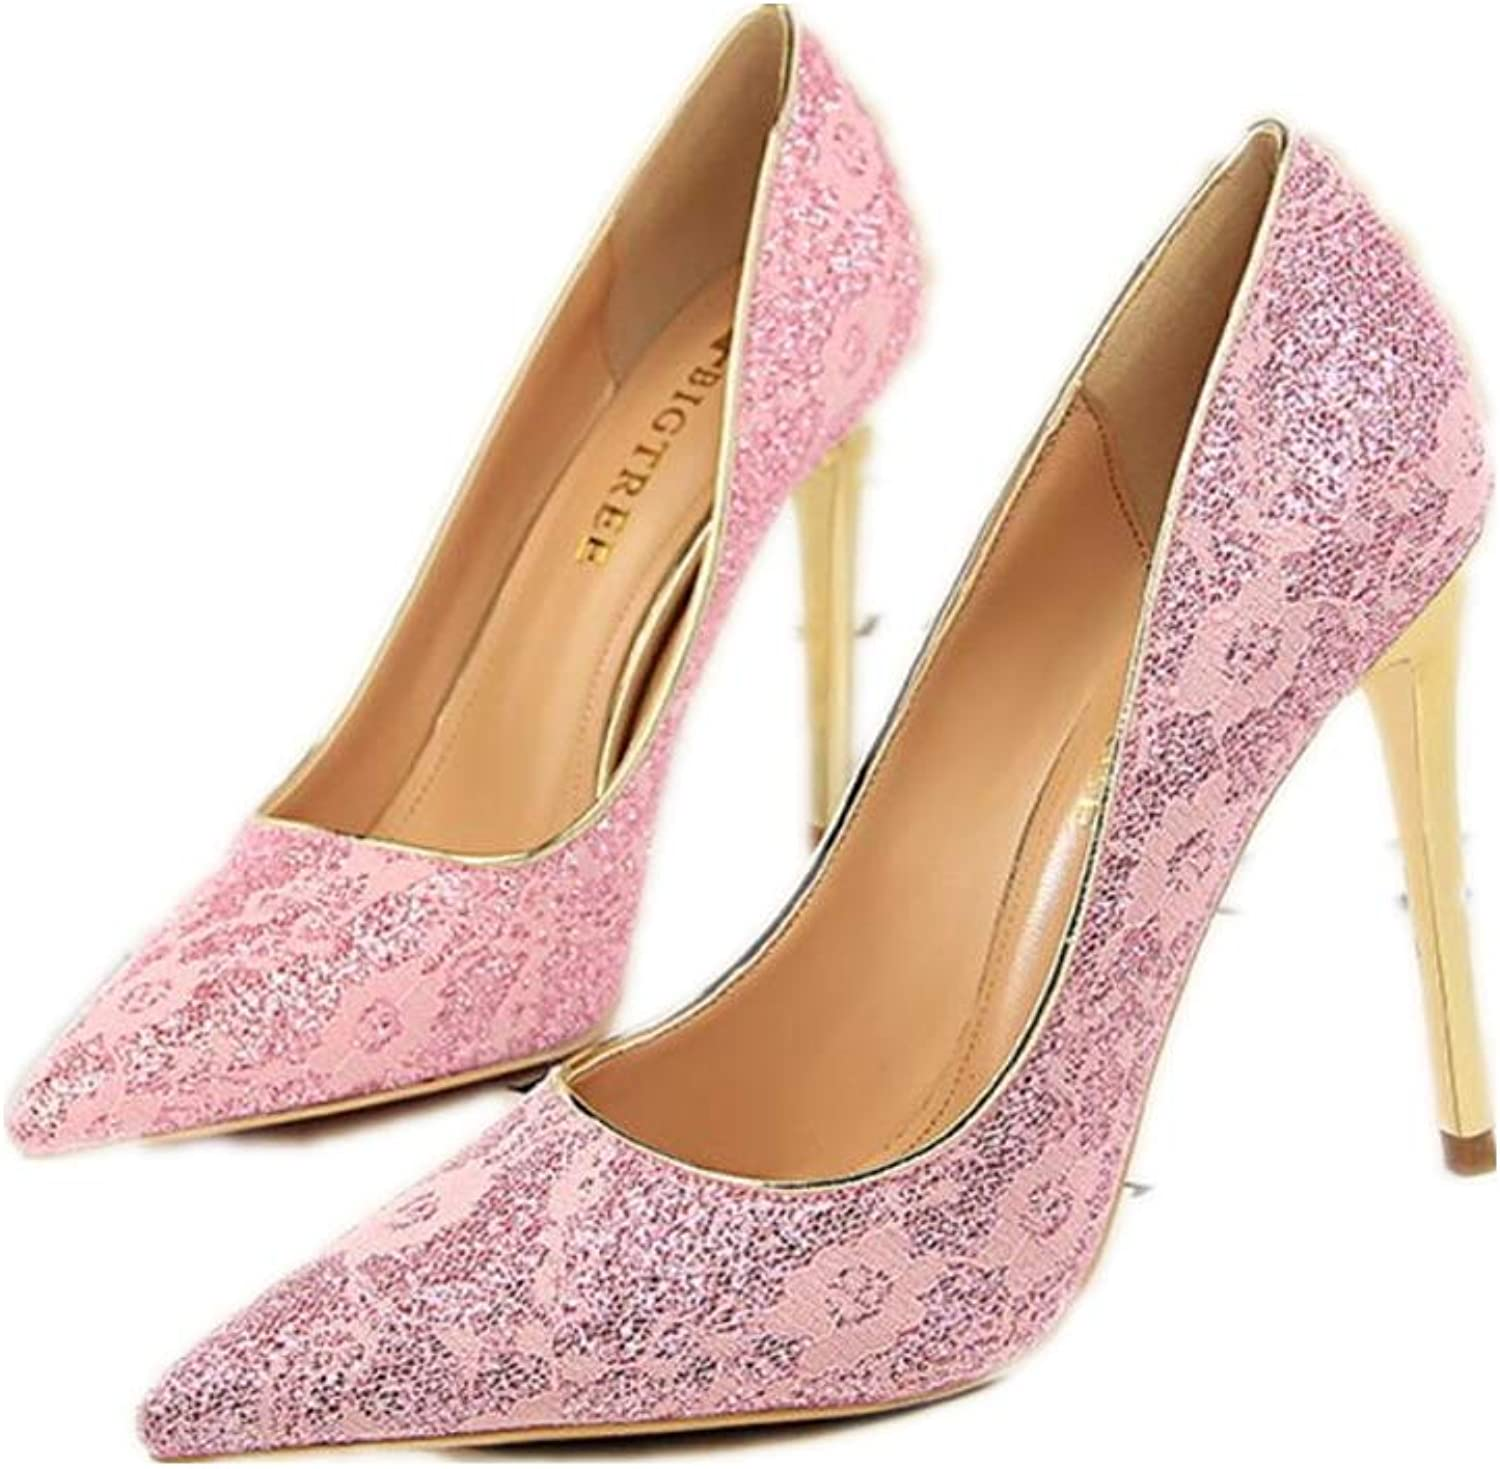 Lace Mesh Bridal Wedding shoes for Women Comfortable Mid Heel Pointy Toe Pumps